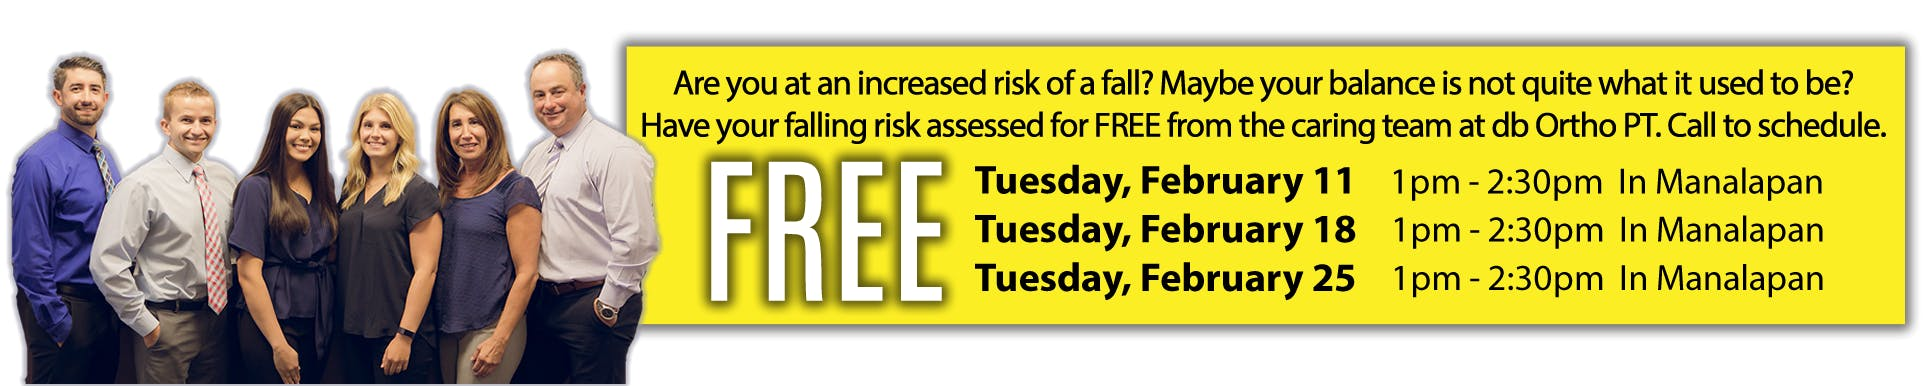 Are you at an increased risk of fall? Maybe your balance is not quite what it used to be? Have you falling risk assed for FREE from the caring team at dbOrtho PT. Call to schedule. | Tuesday, February 11th 1pm-2:30pm in Manalapan | Tuesday, February 18th 1pm-2:30pm in Manalapan | Tuesday, February 25th 1pm-2:30pm in Manalapan